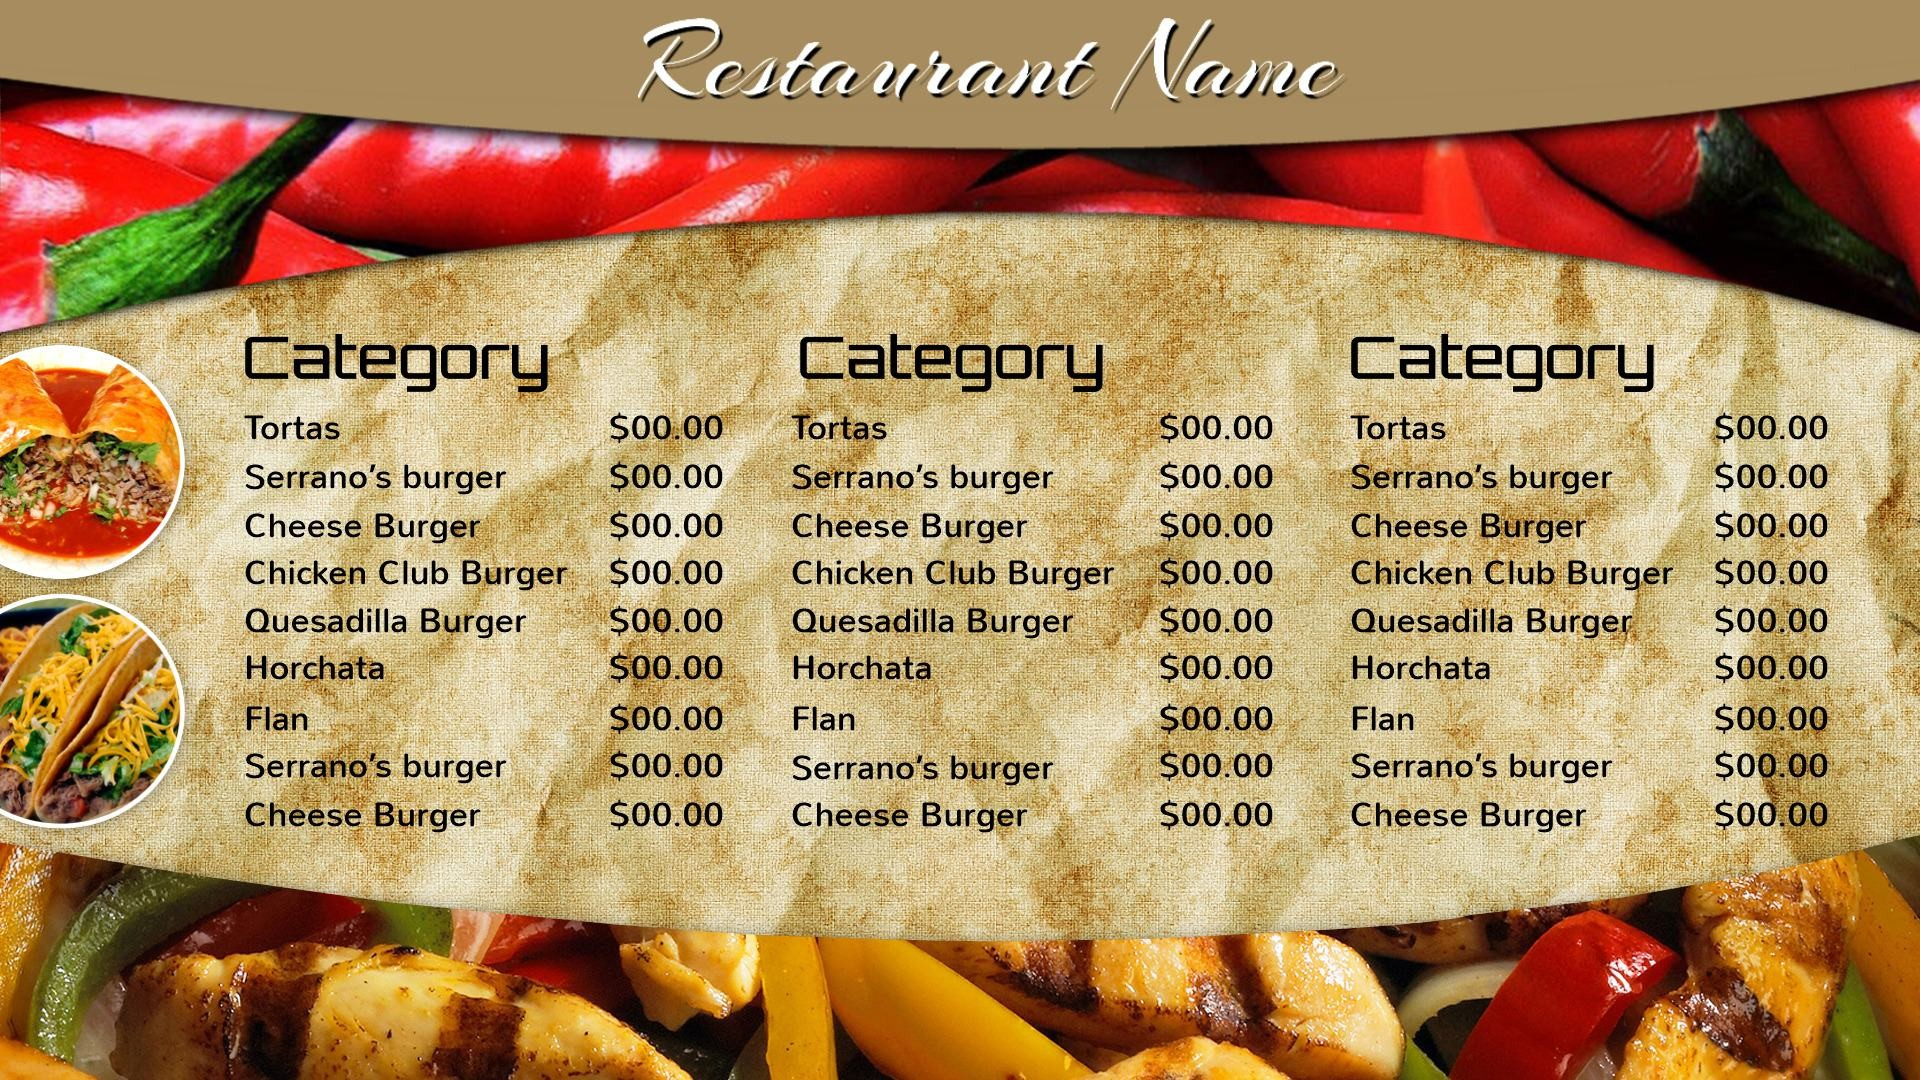 1920x1080, Mexican Restaurant Menu Designs Free Download - Chicago-style Hot Dog - HD Wallpaper